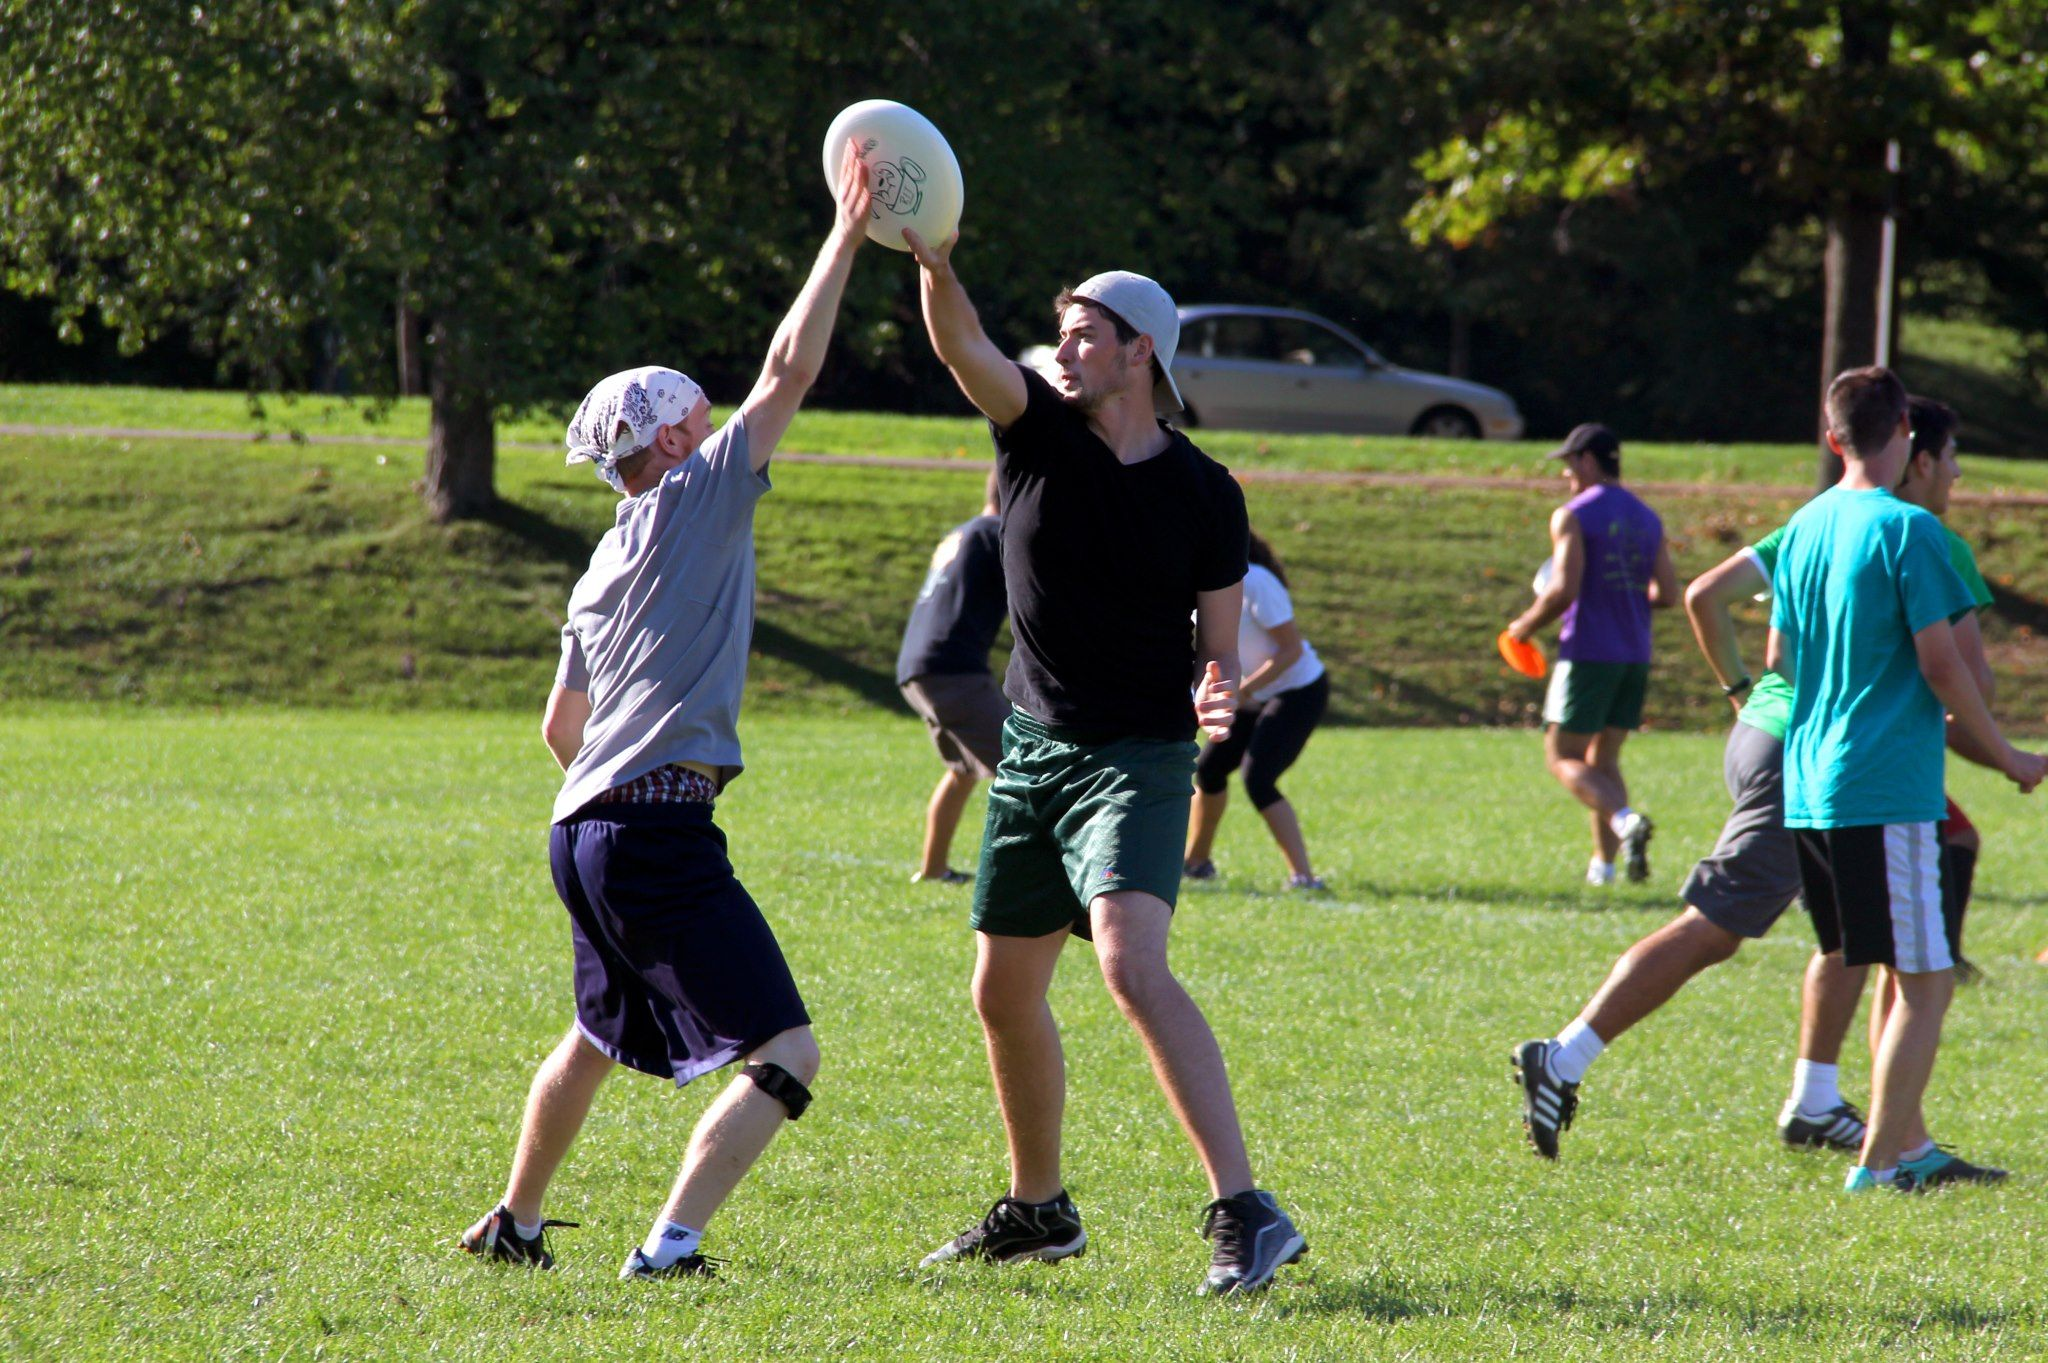 Ultimate Frisbee Ultimate Frisbee Athlete Running